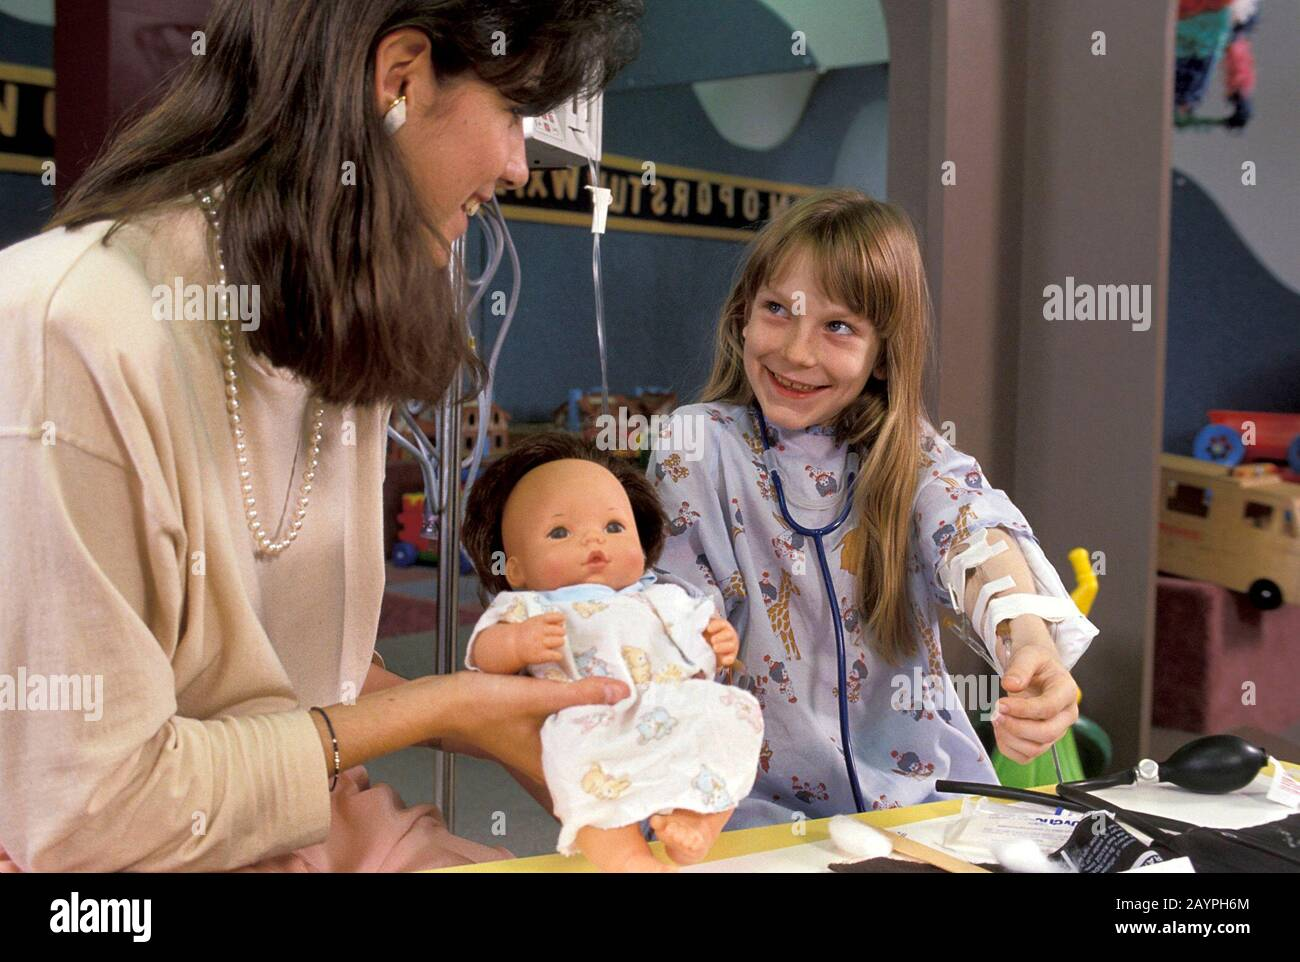 Child Life Specialist Works With Sick Child At Hospital Mr C Bob Daemmrich Stock Photo Alamy